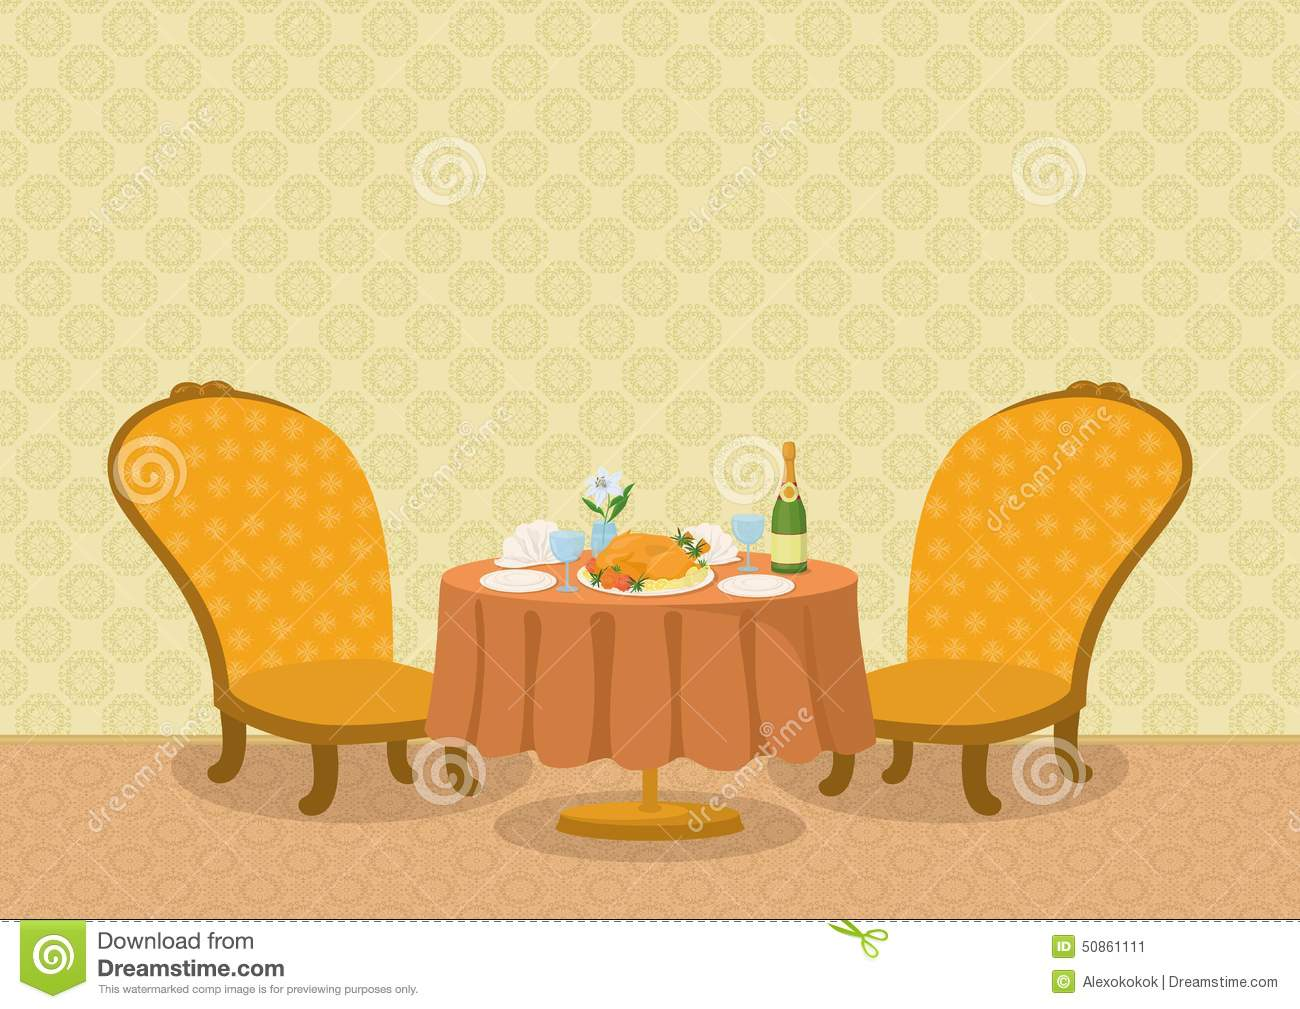 Restaurant tables and chairs clipart - Restaurant With Dishes On Table Stock Vector